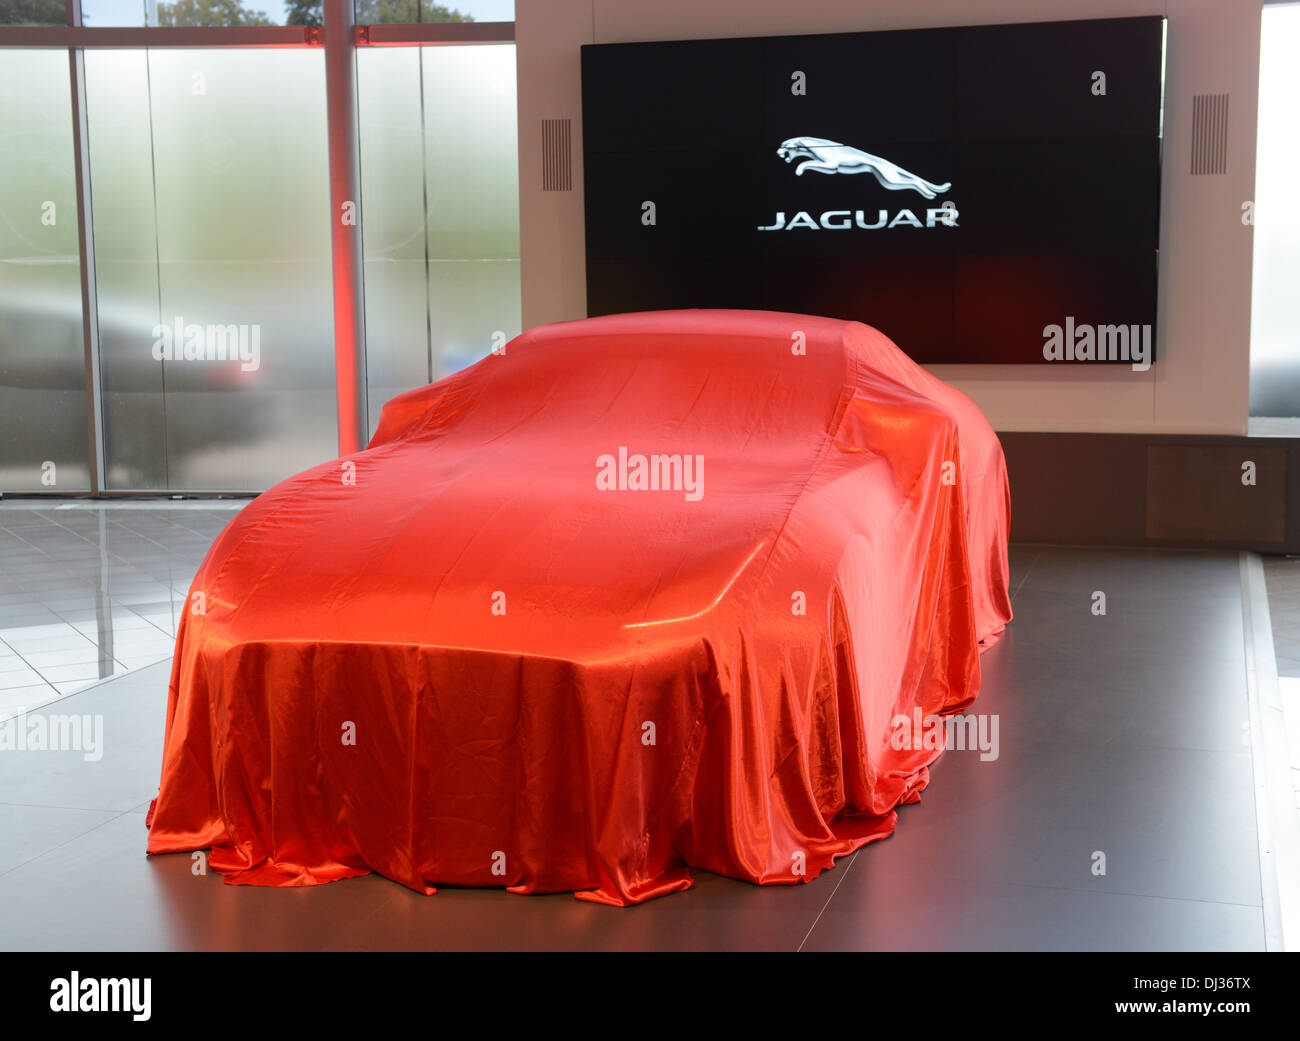 New Jaguar F Type under wraps before its launch - Stock Image